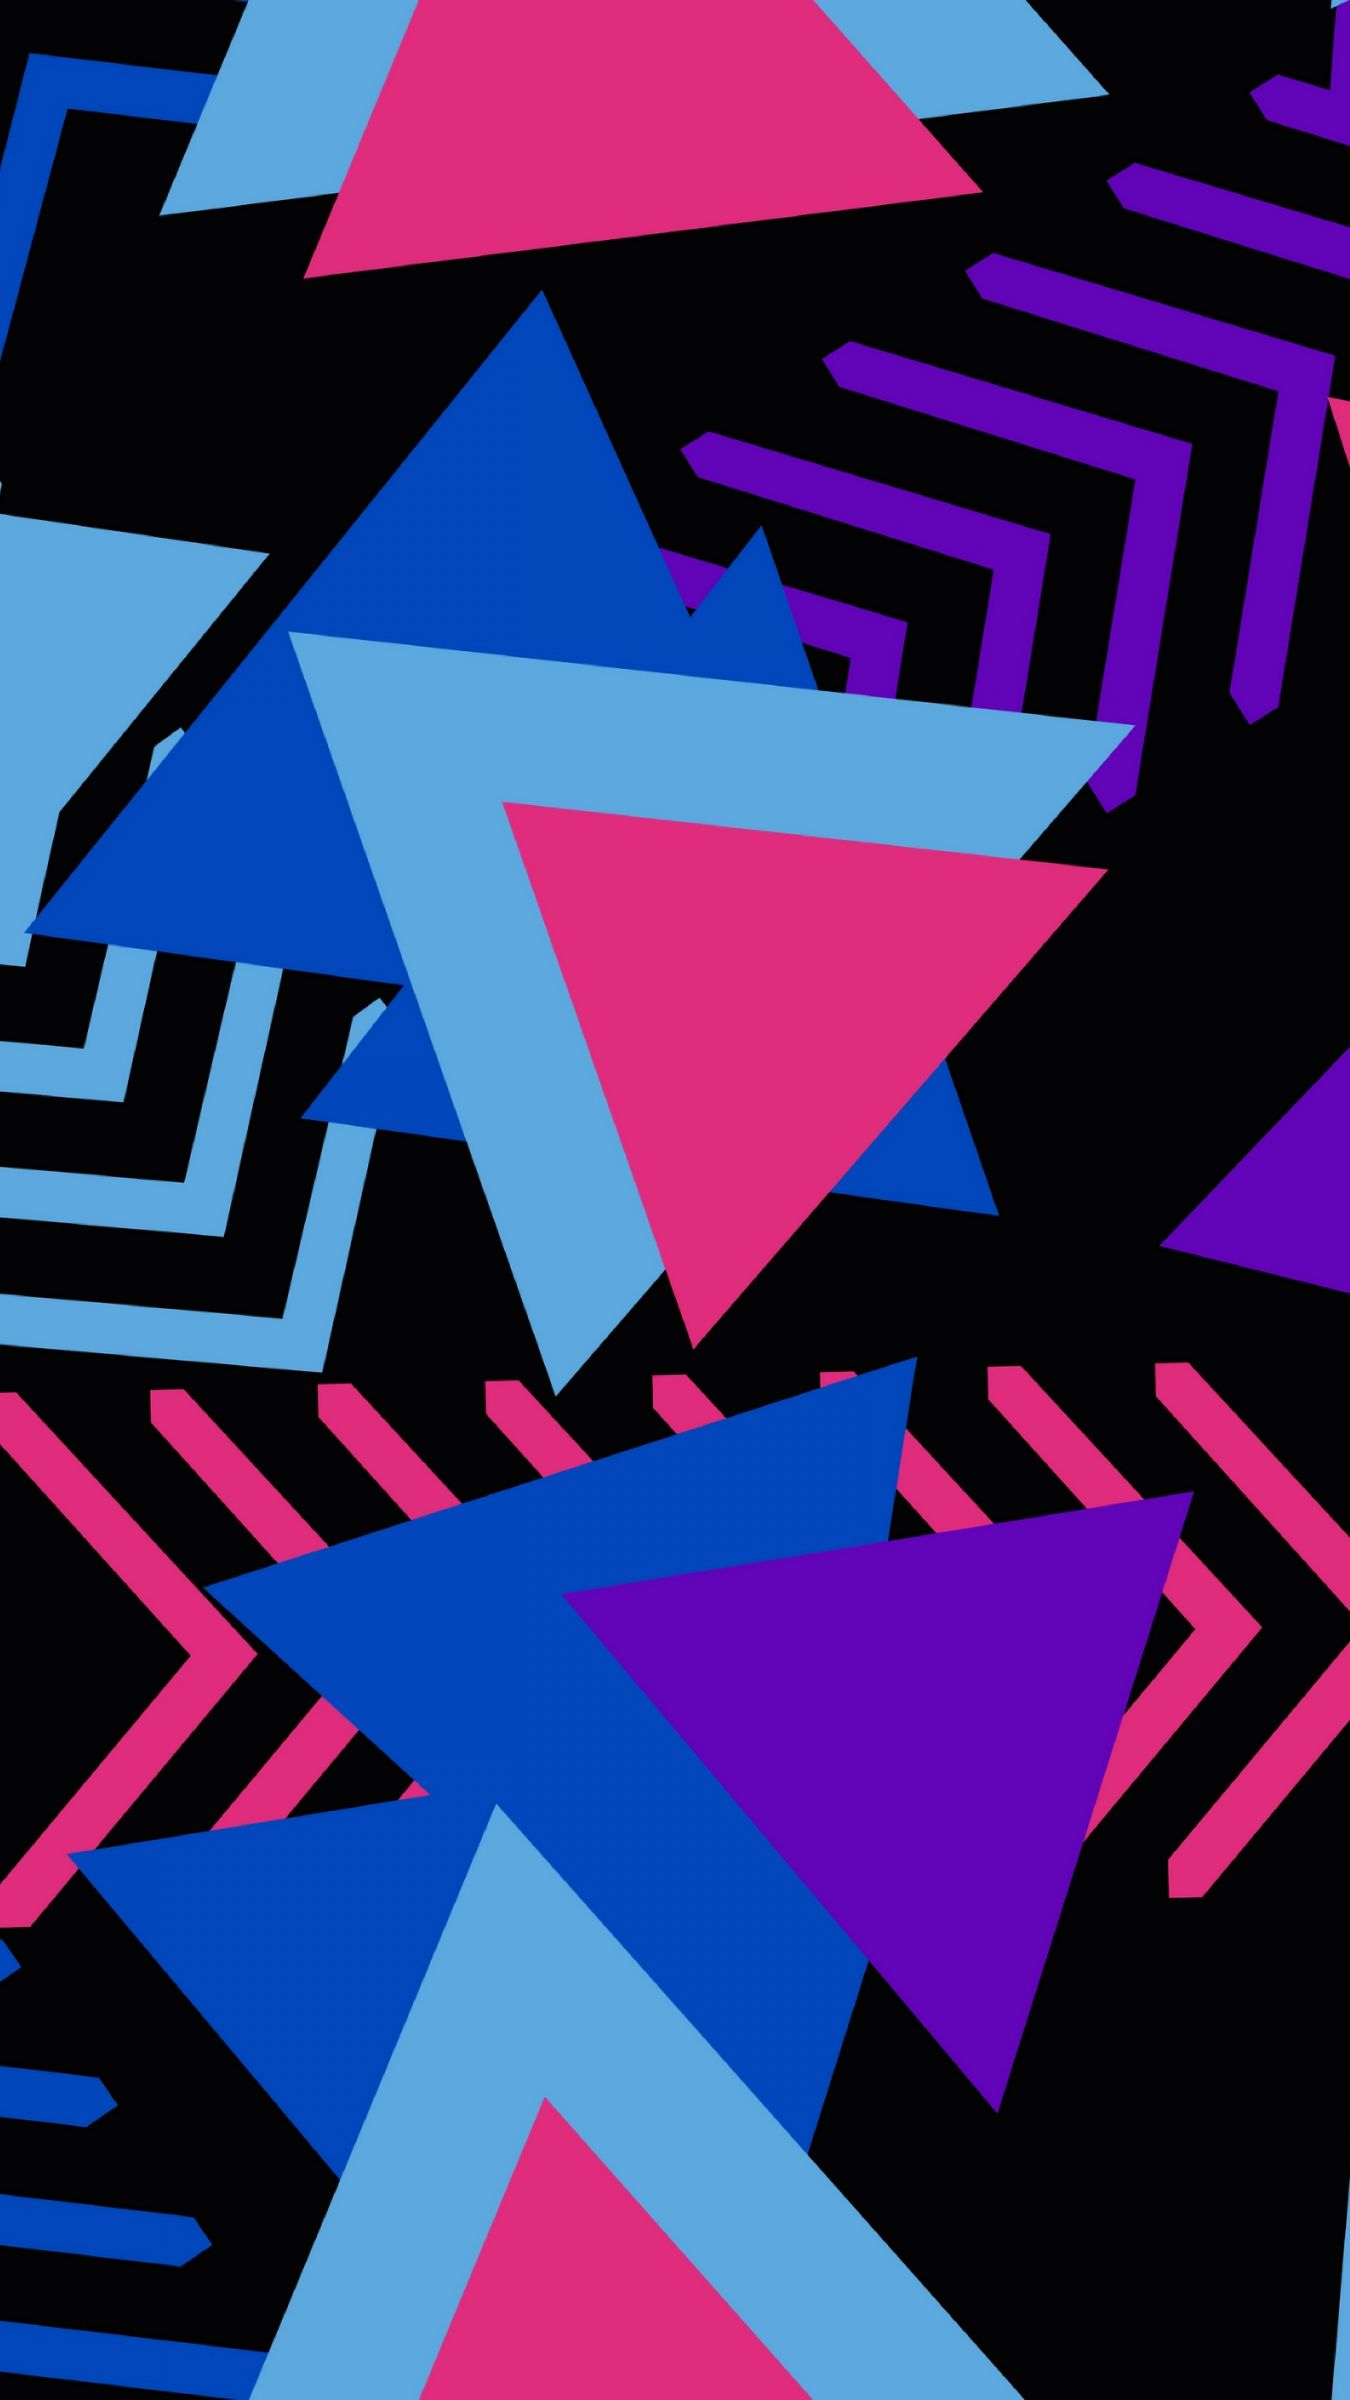 1350x2400 Download wallpaper 1350x2400 triangles, triangle, colorful ...